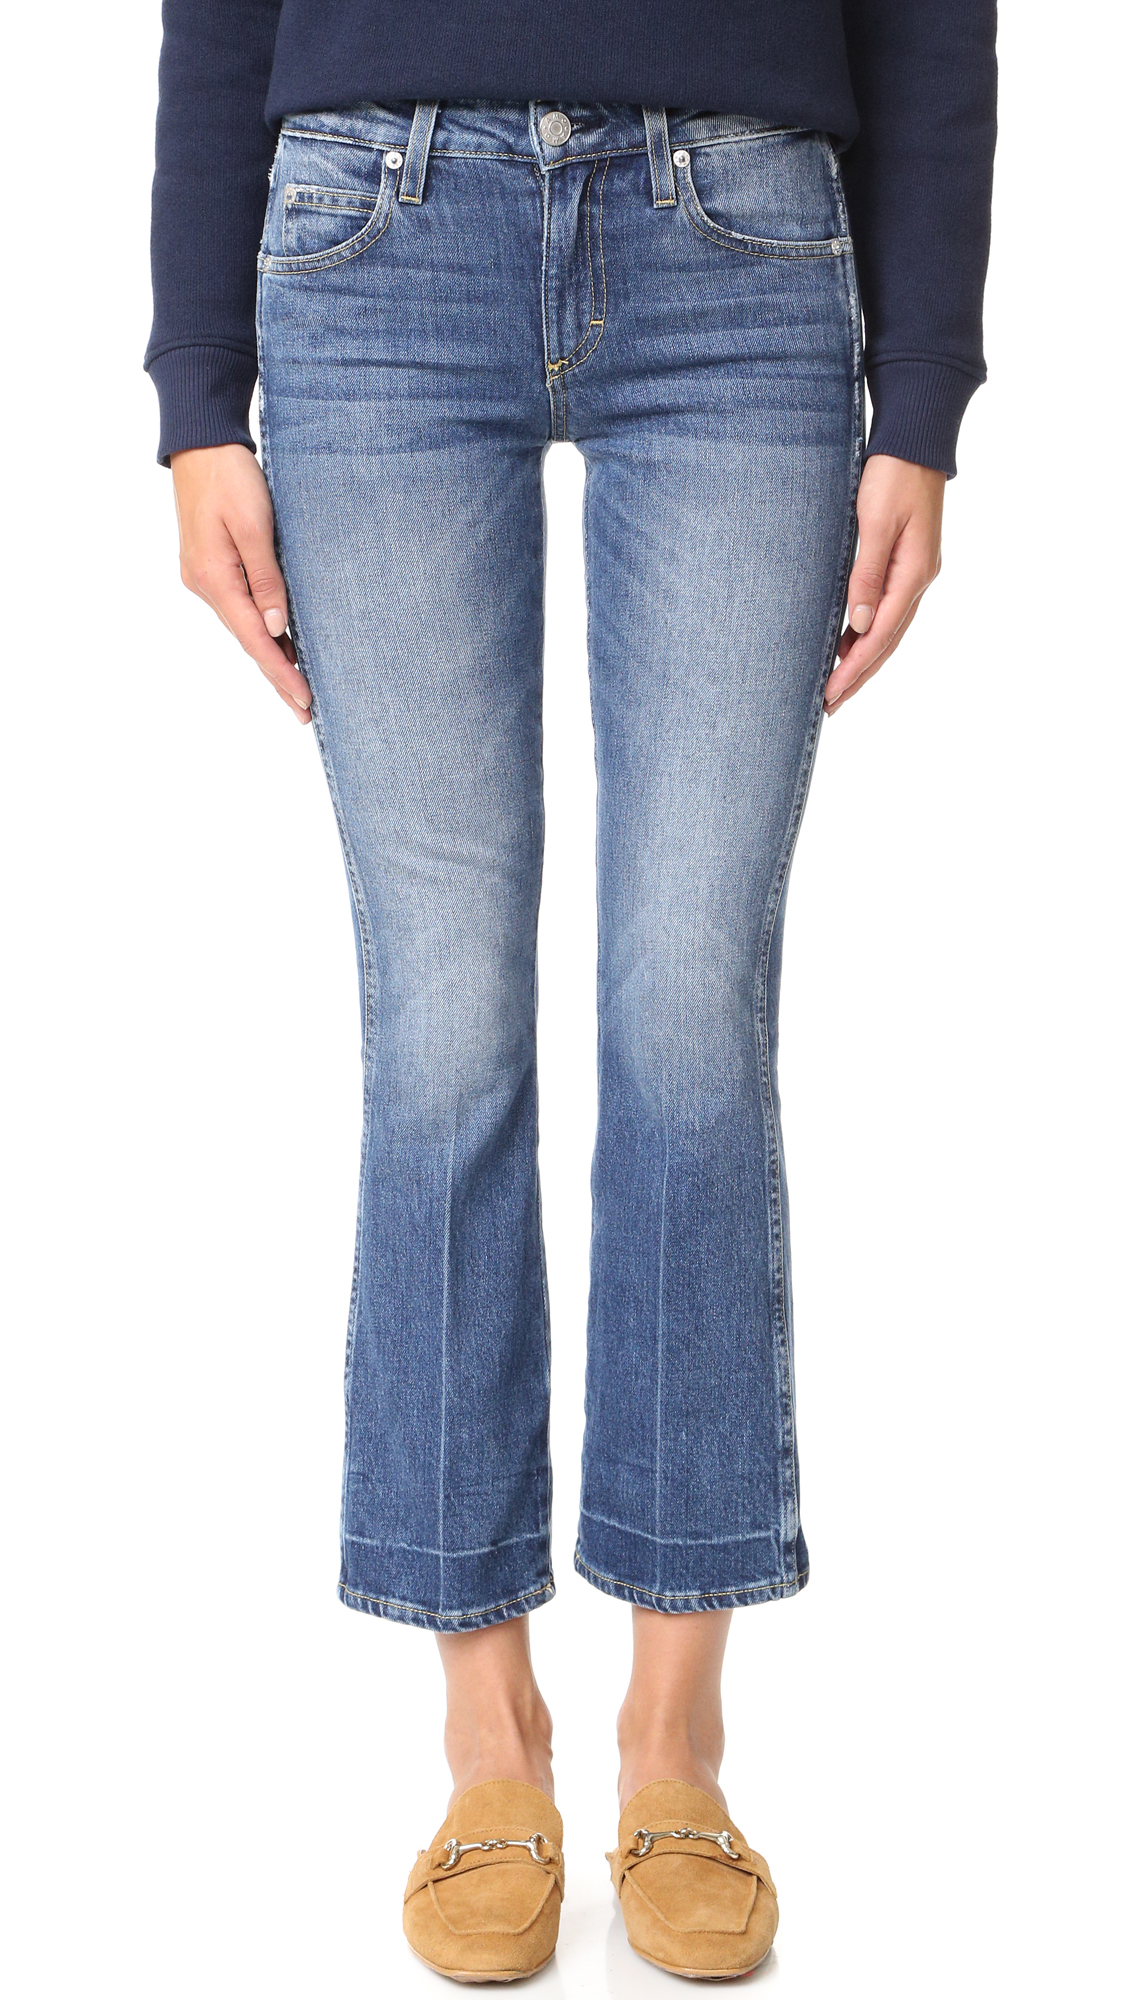 Fading and whiskering lend a time worn effect to these ankle length AMO flares. 5 pocket styling. Button closure and zip fly. Fabric: Stretch denim. 98% cotton/2% elastane. Wash cold. Made in the USA. Imported materials. Measurements Rise: 9.5